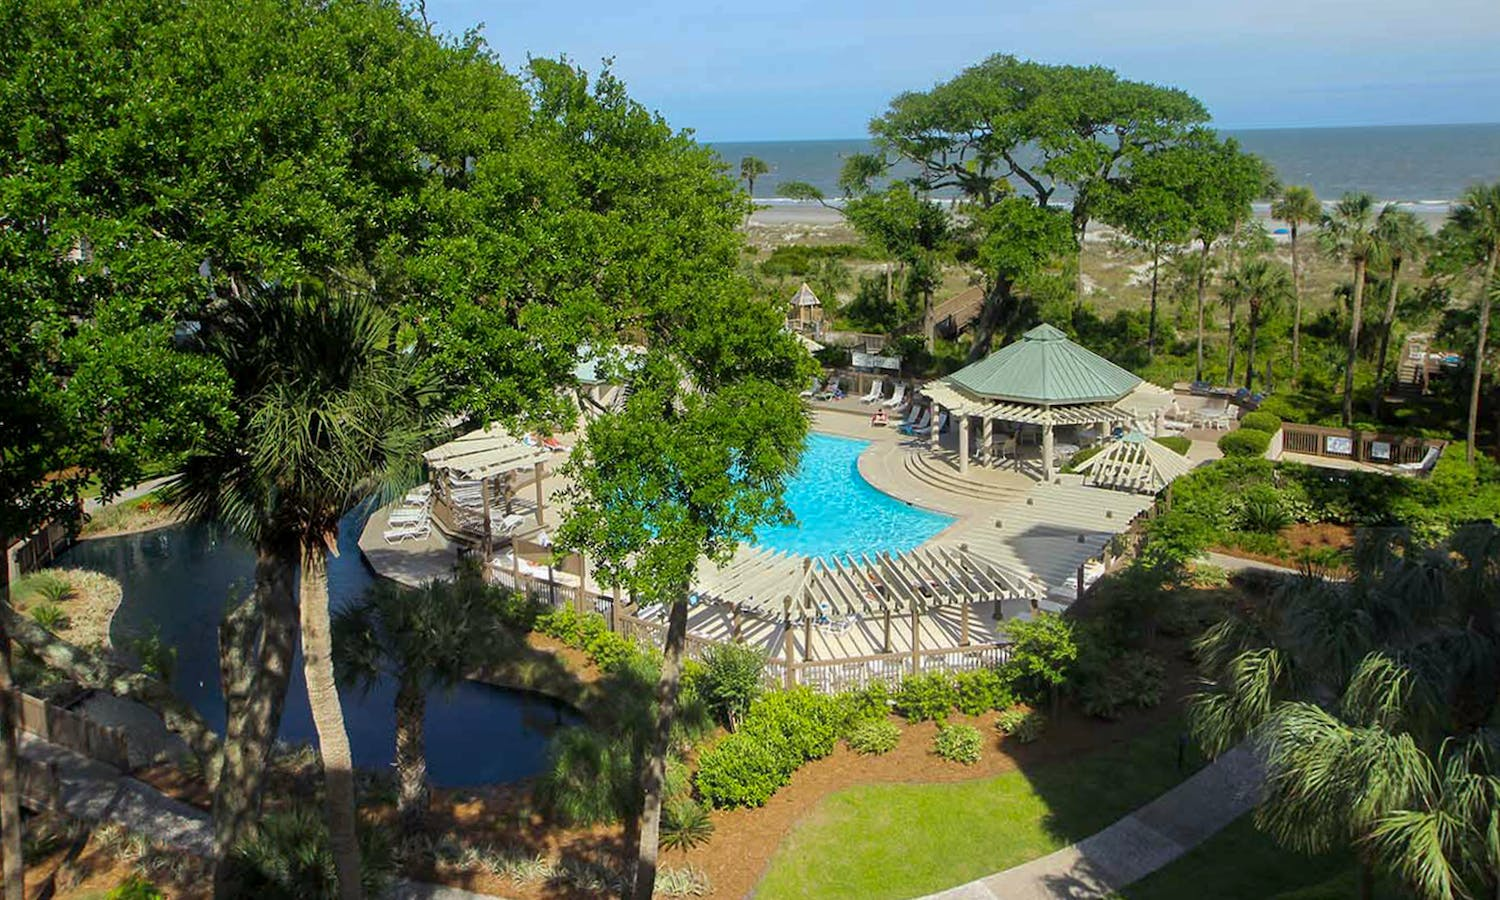 Windsor Court South 3405 Vacation Rental In Hilton Head Sc Hhi Vacasa